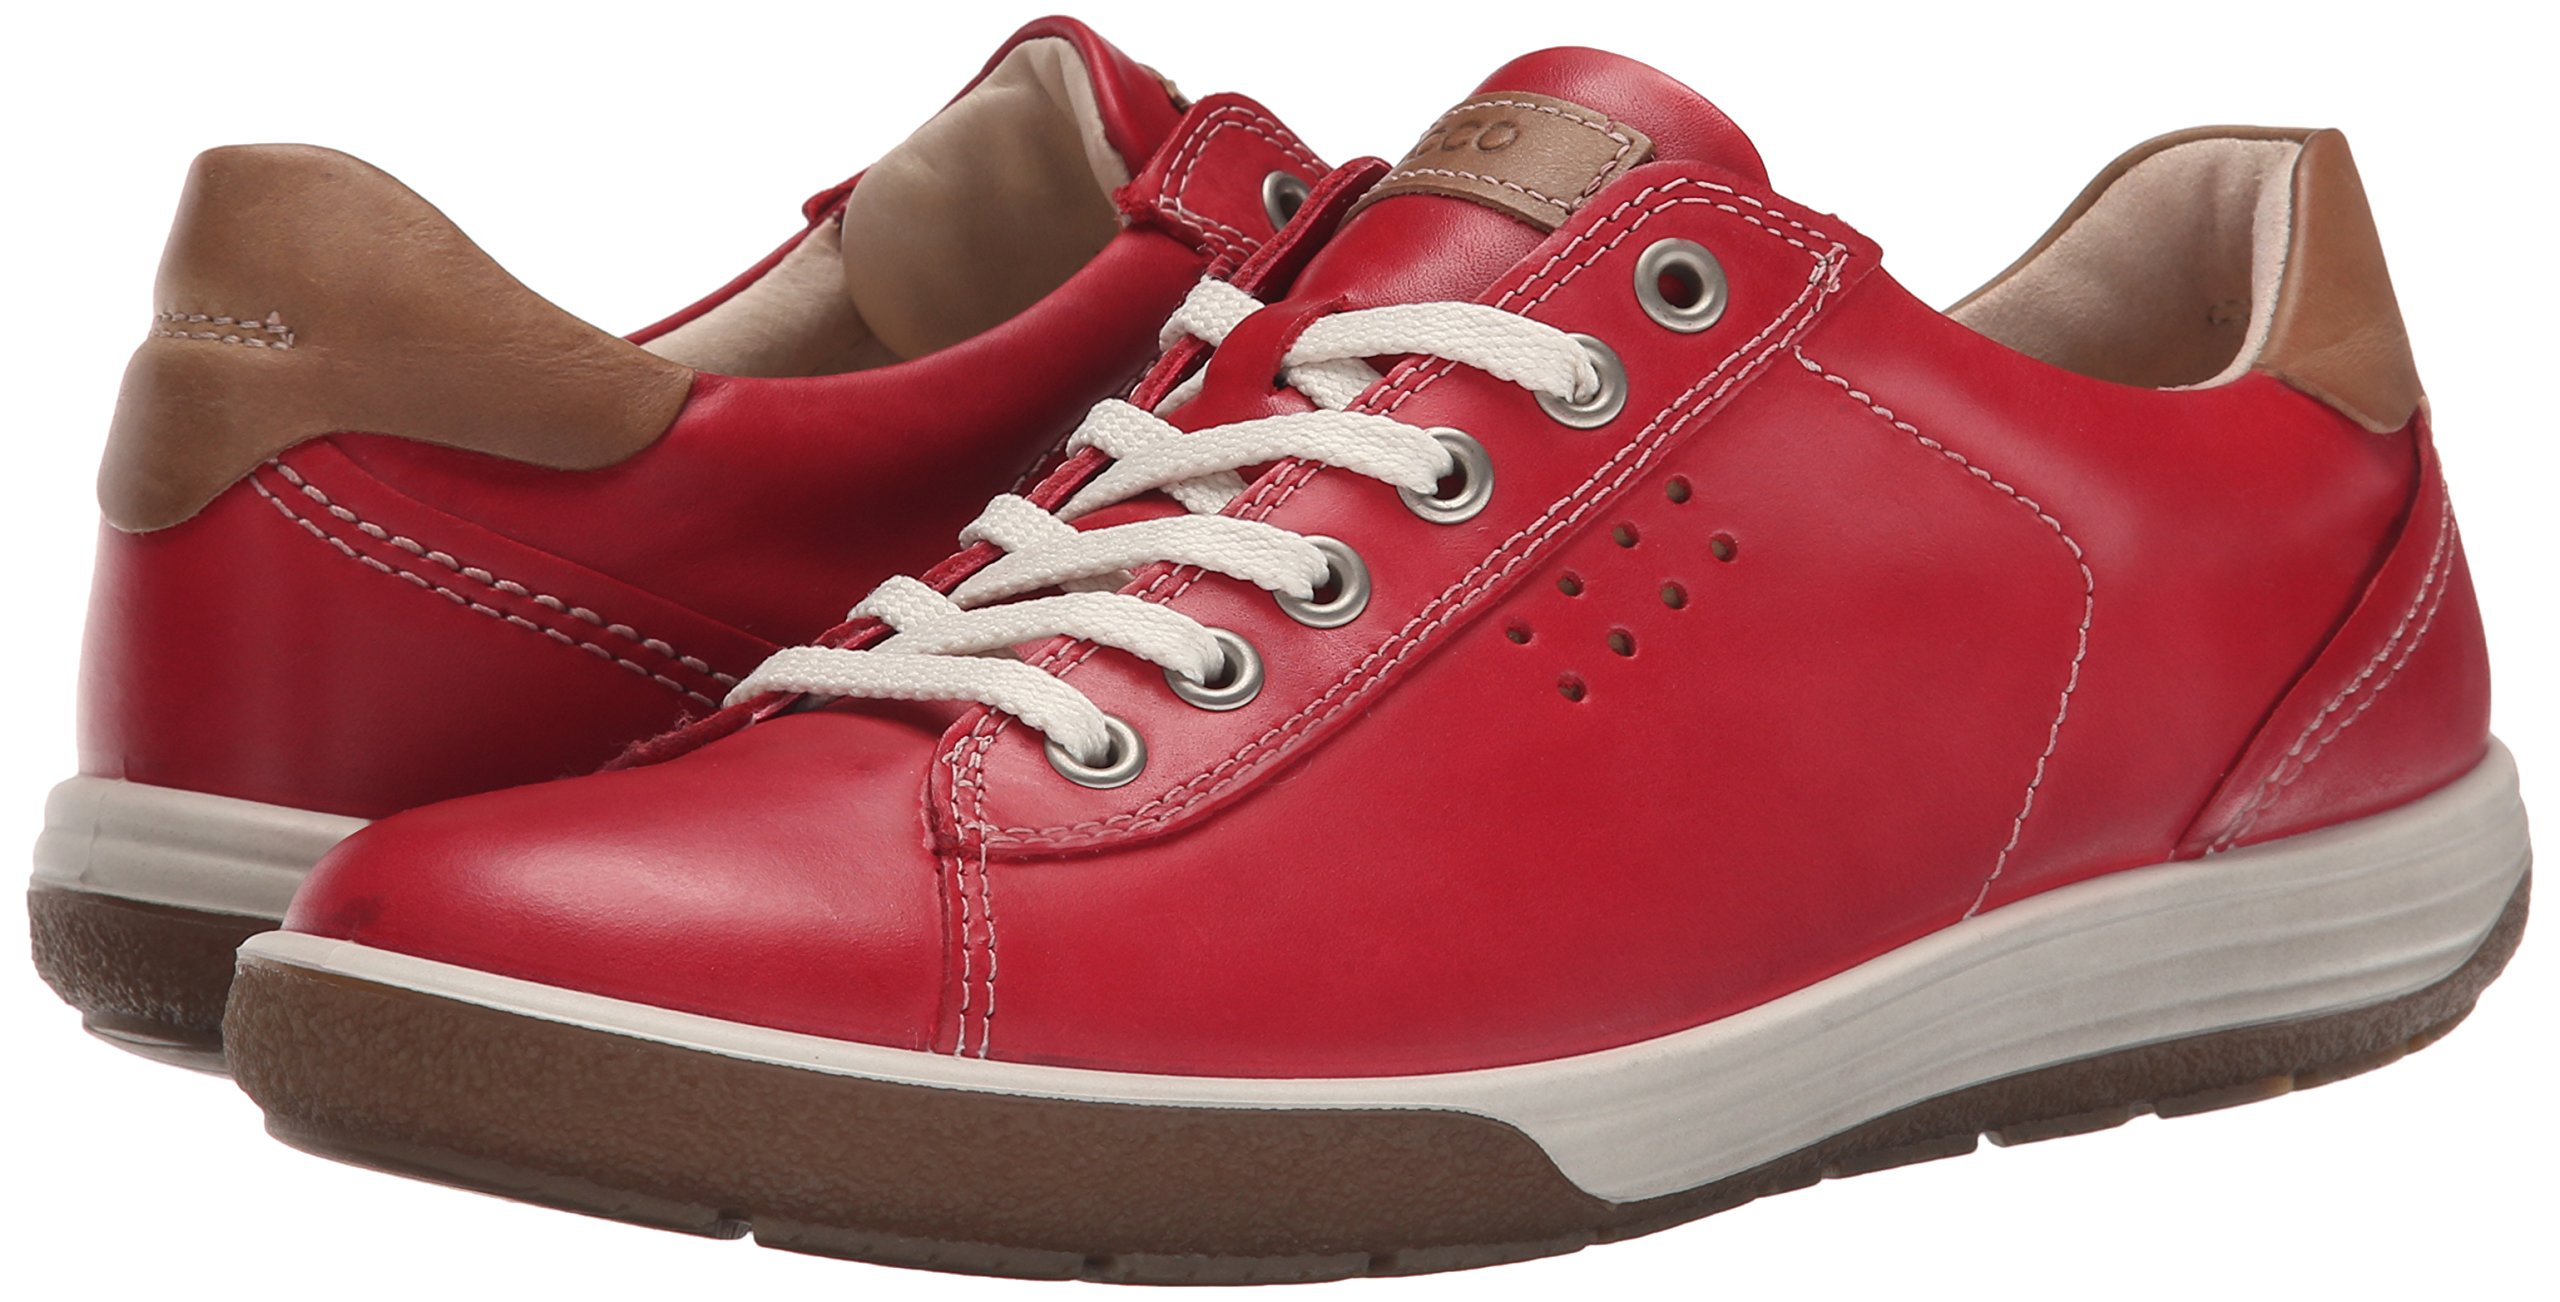 ECCO Footwear Womens Chase Tie Sneaker, Chilli Red, 39 EU/8-8.5 M US by ECCO (Image #6)